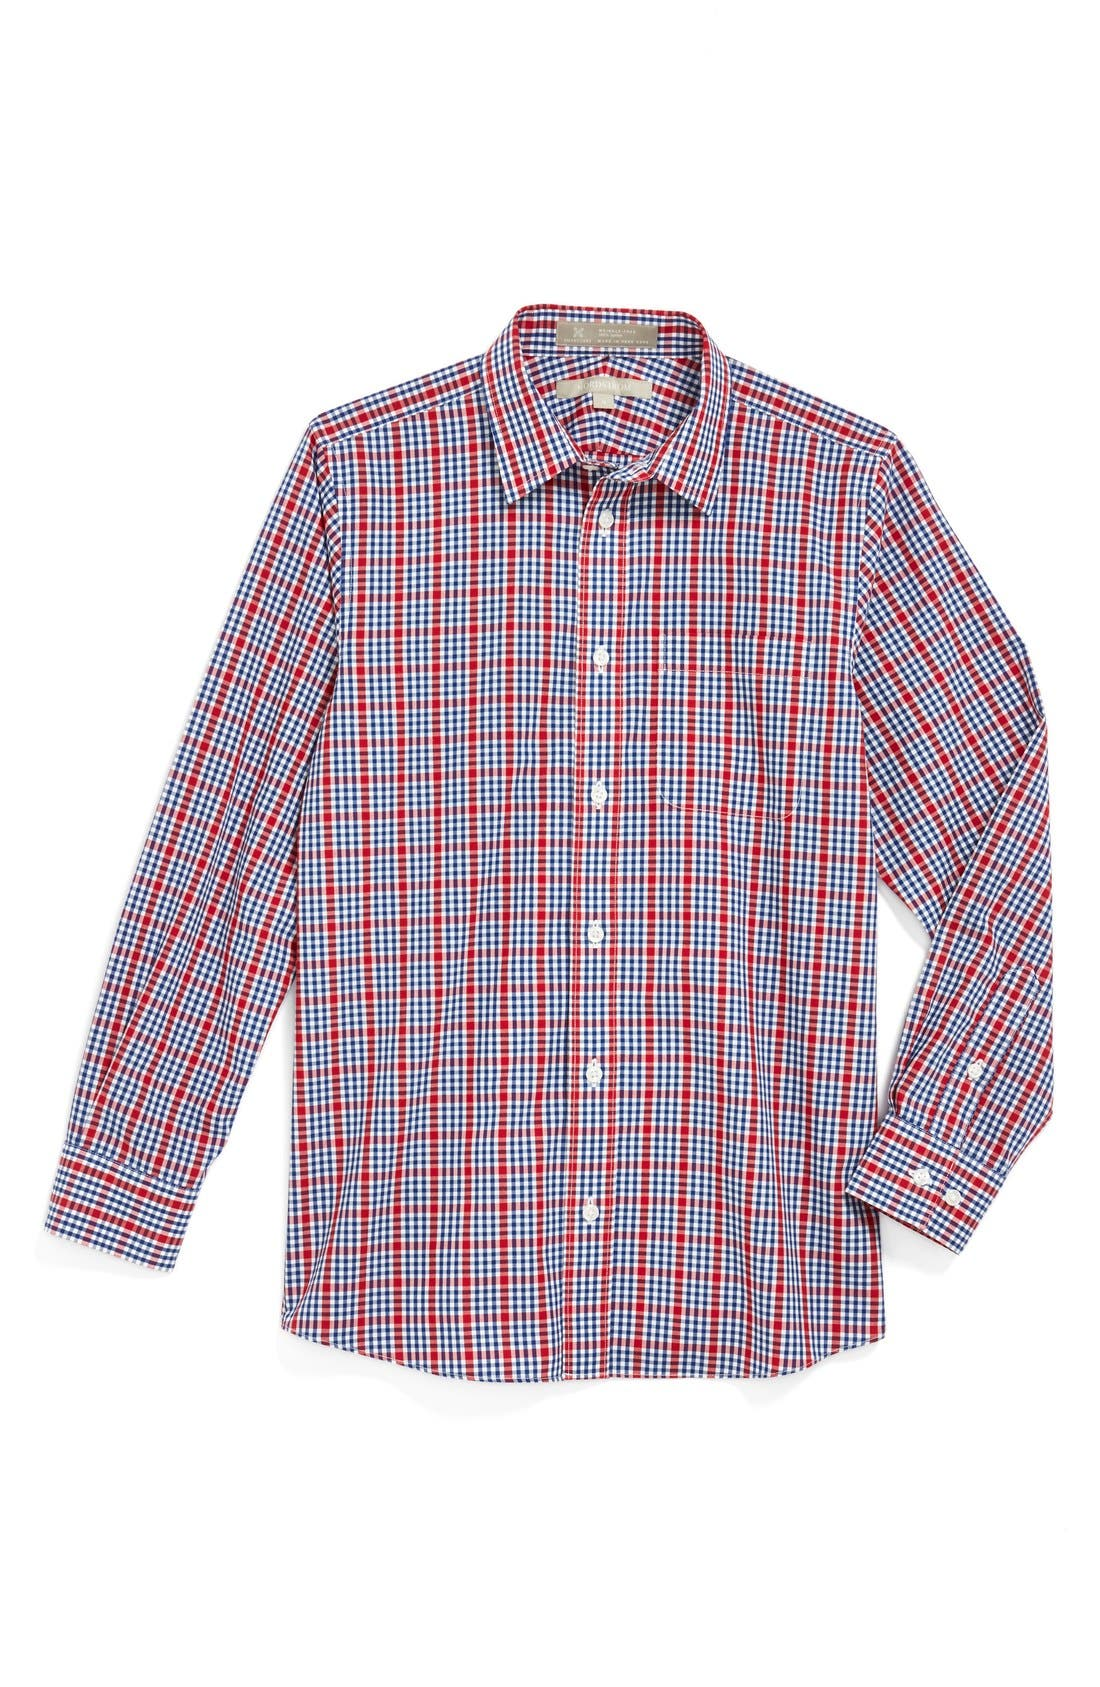 Alternate Image 1 Selected - Nordstrom Smartcare™ Dress Shirt (Big Boys)